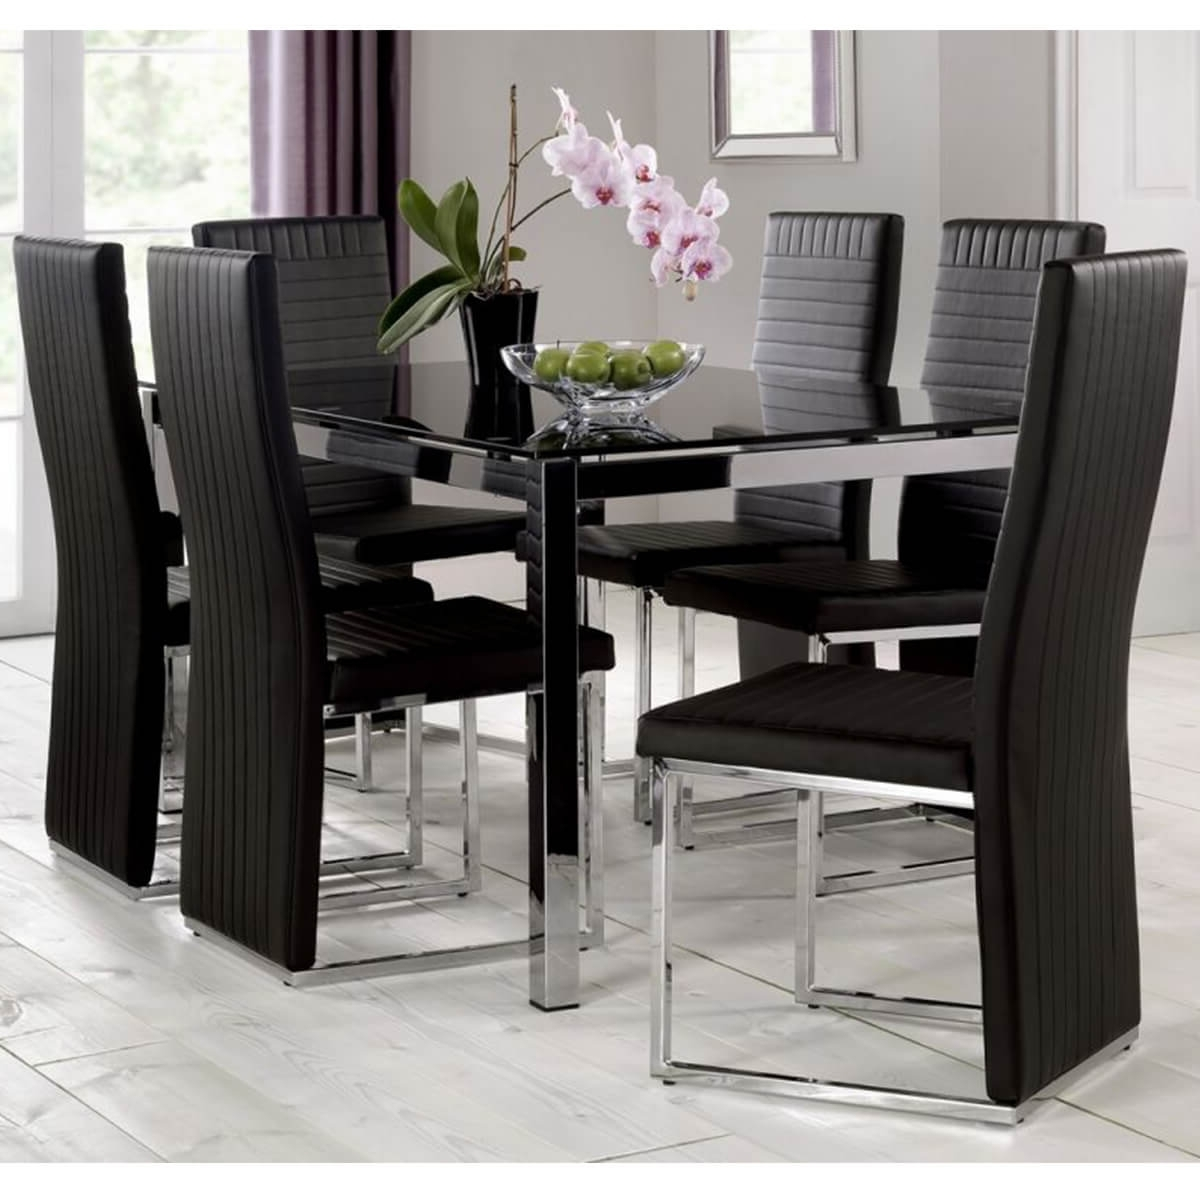 Tempo Black Dining Table With Black Chairs (View 13 of 25)